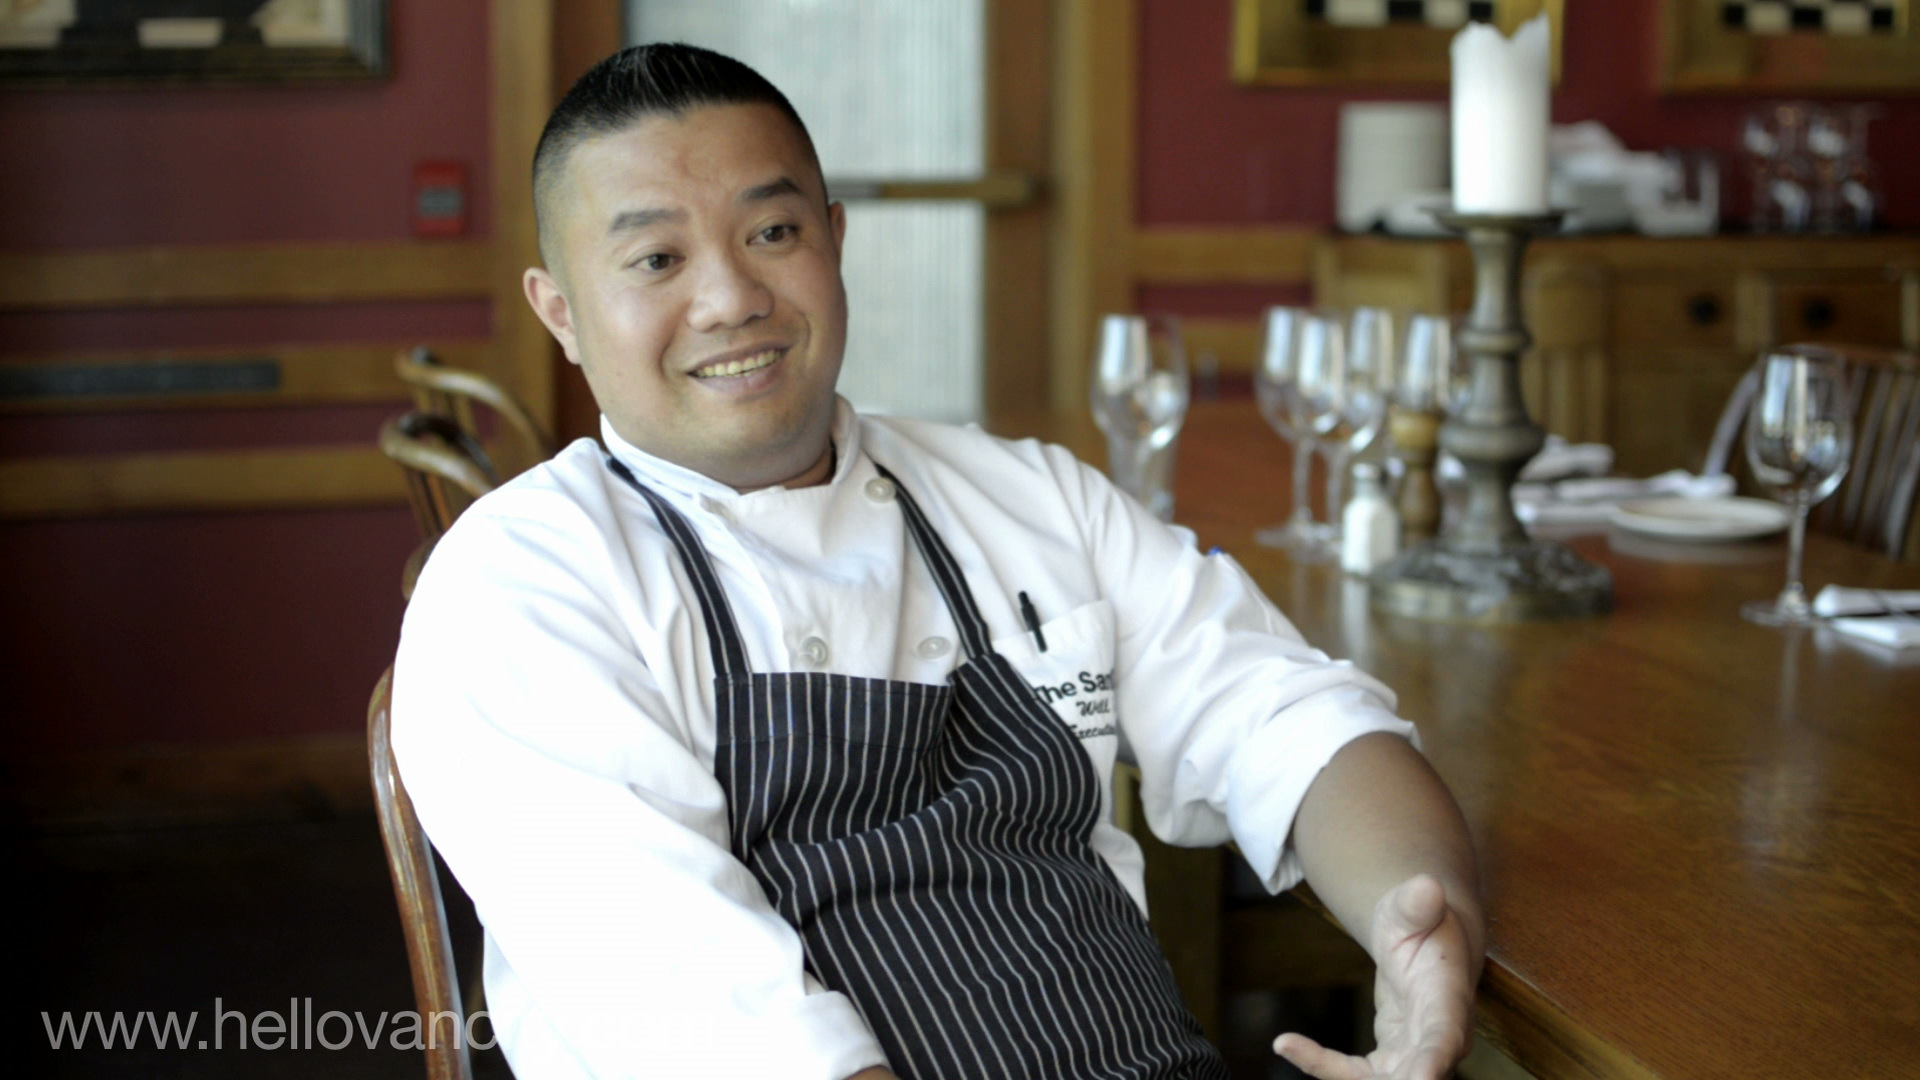 Chef William Tse - Executive Chef of Sandbar Seafood Restaurant, Granville Island